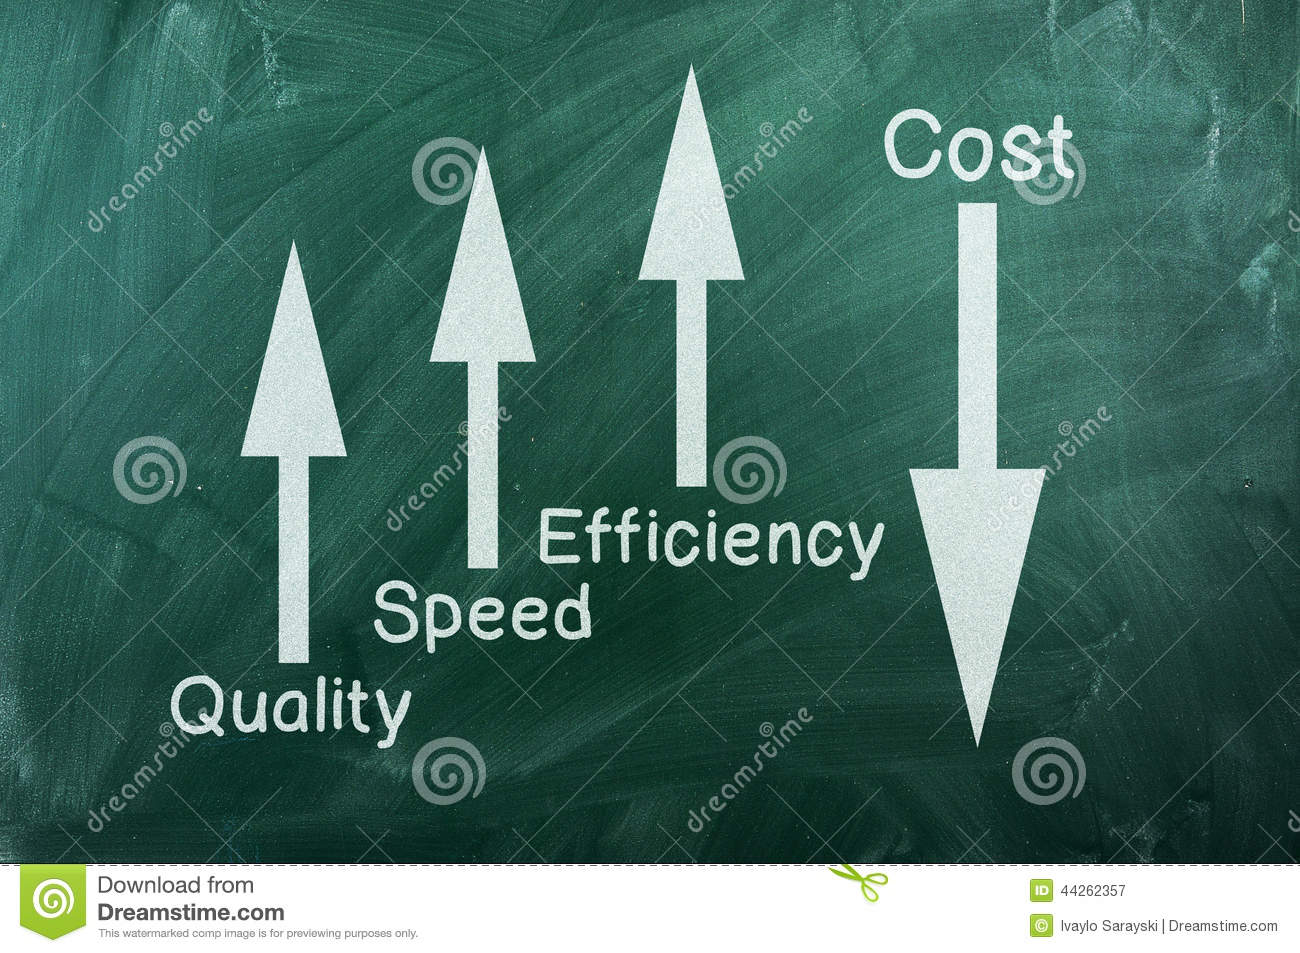 Quality ,speed, Efficiency Up Cost Down Stock Photo - Image: 44262357